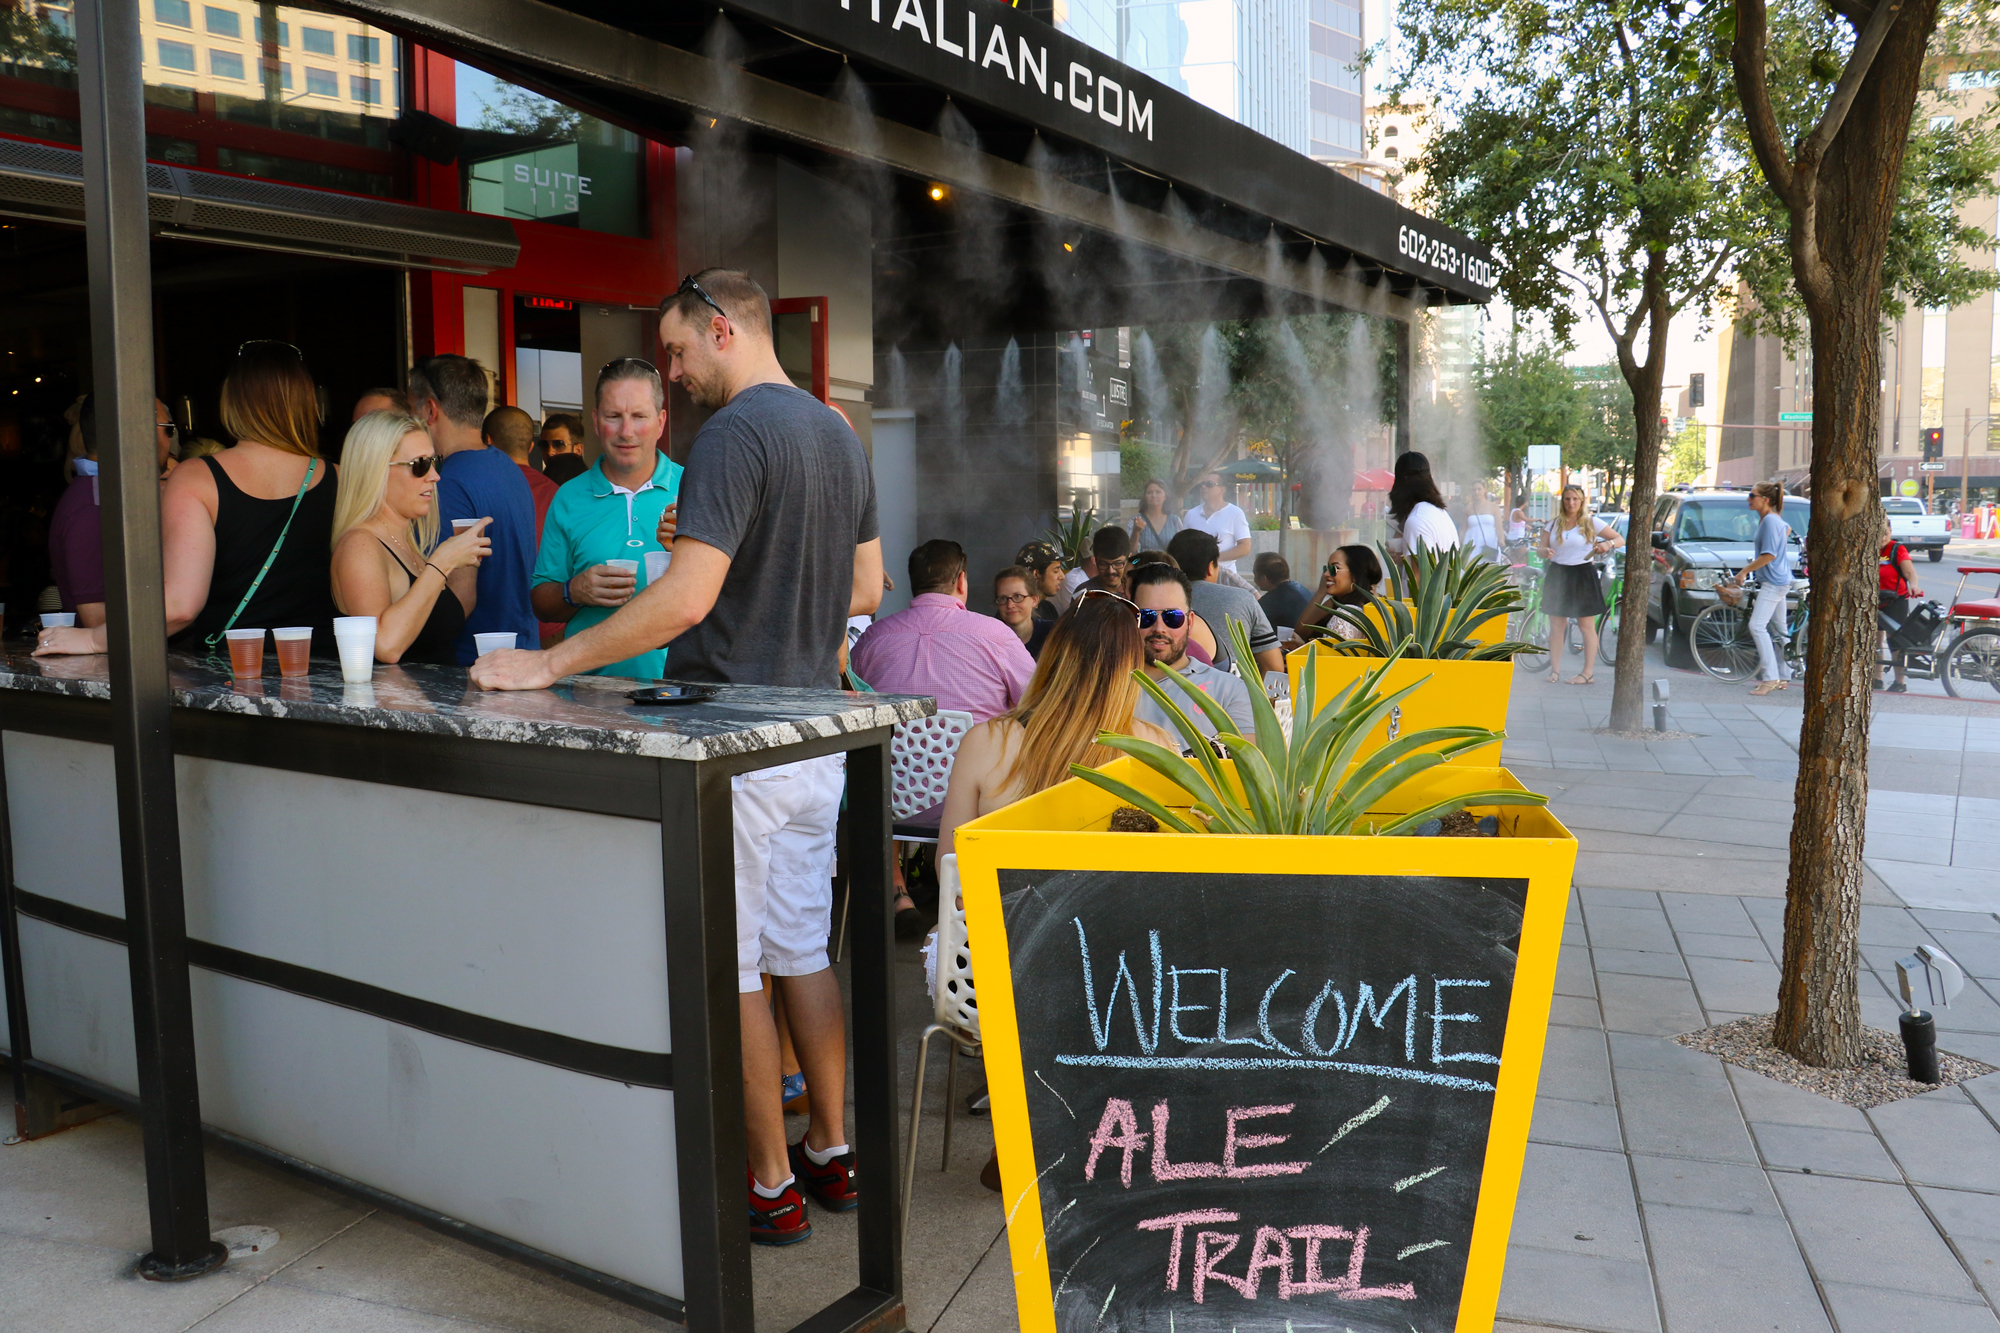 urban ale trail downtown phoenix inc